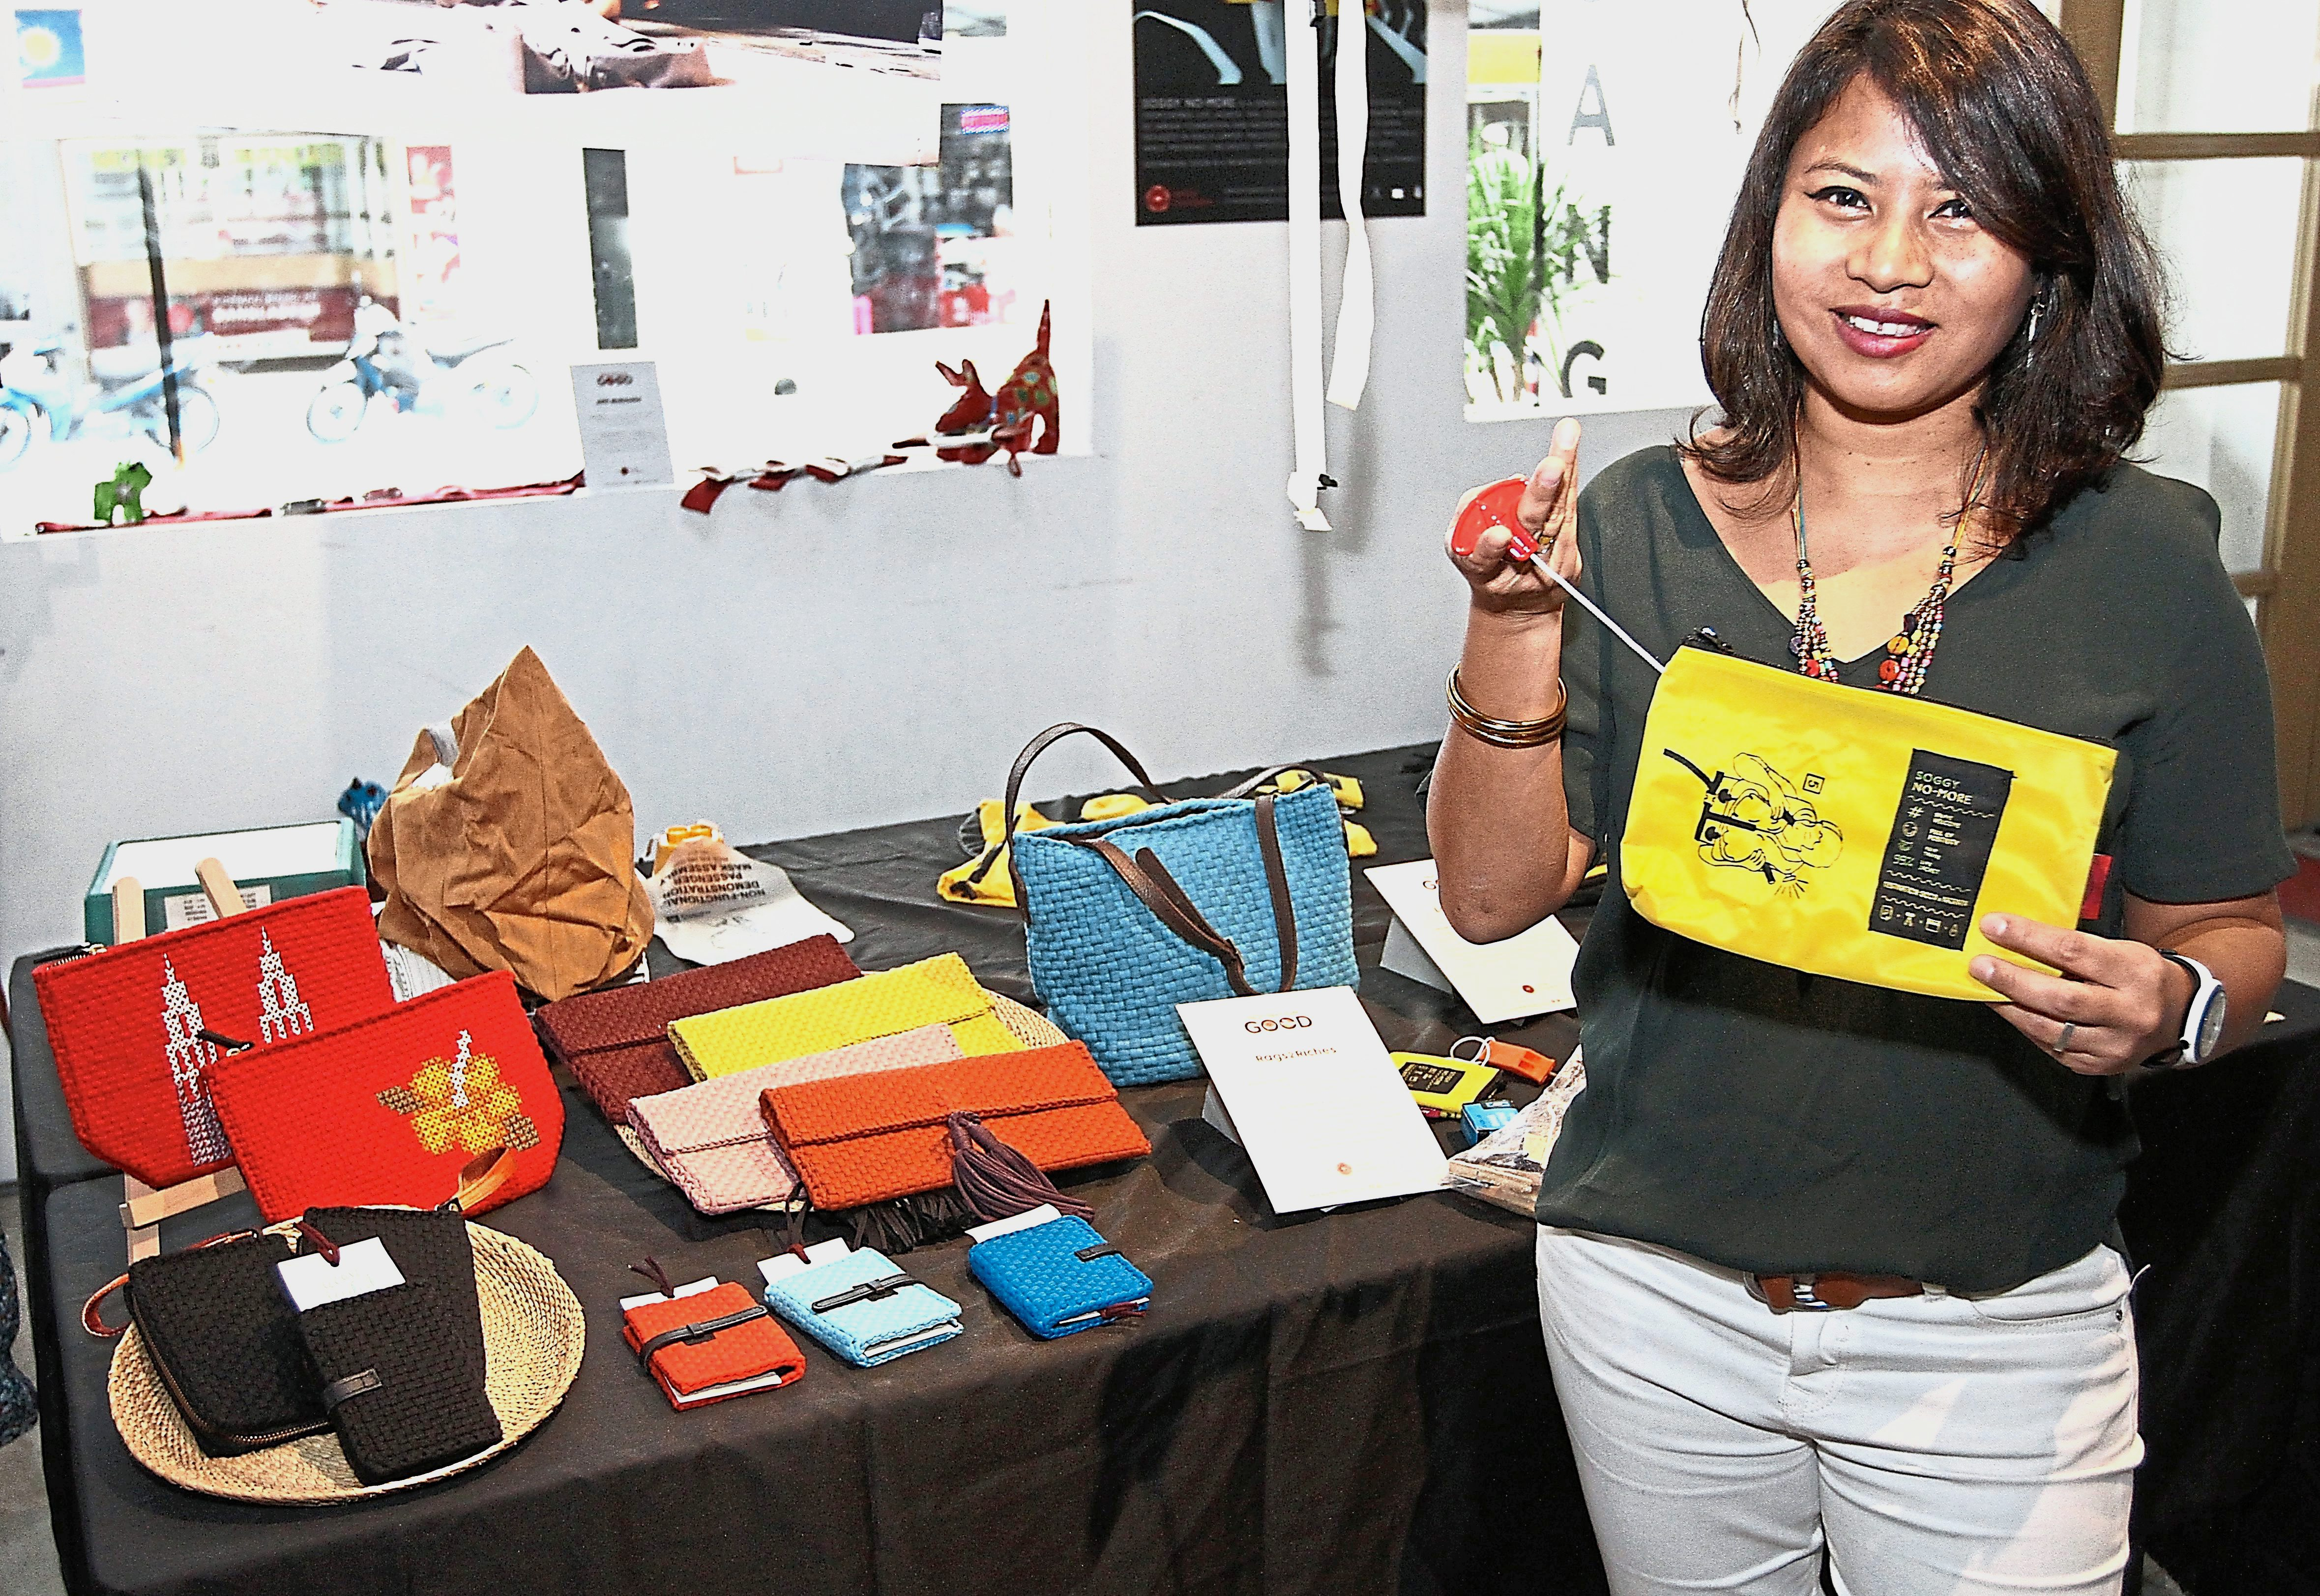 Eke holding a pouch from the Soggy No More collection, which are made from expired life jackets by a social enterprise of Afghan refugees in Kuala Lumpur.